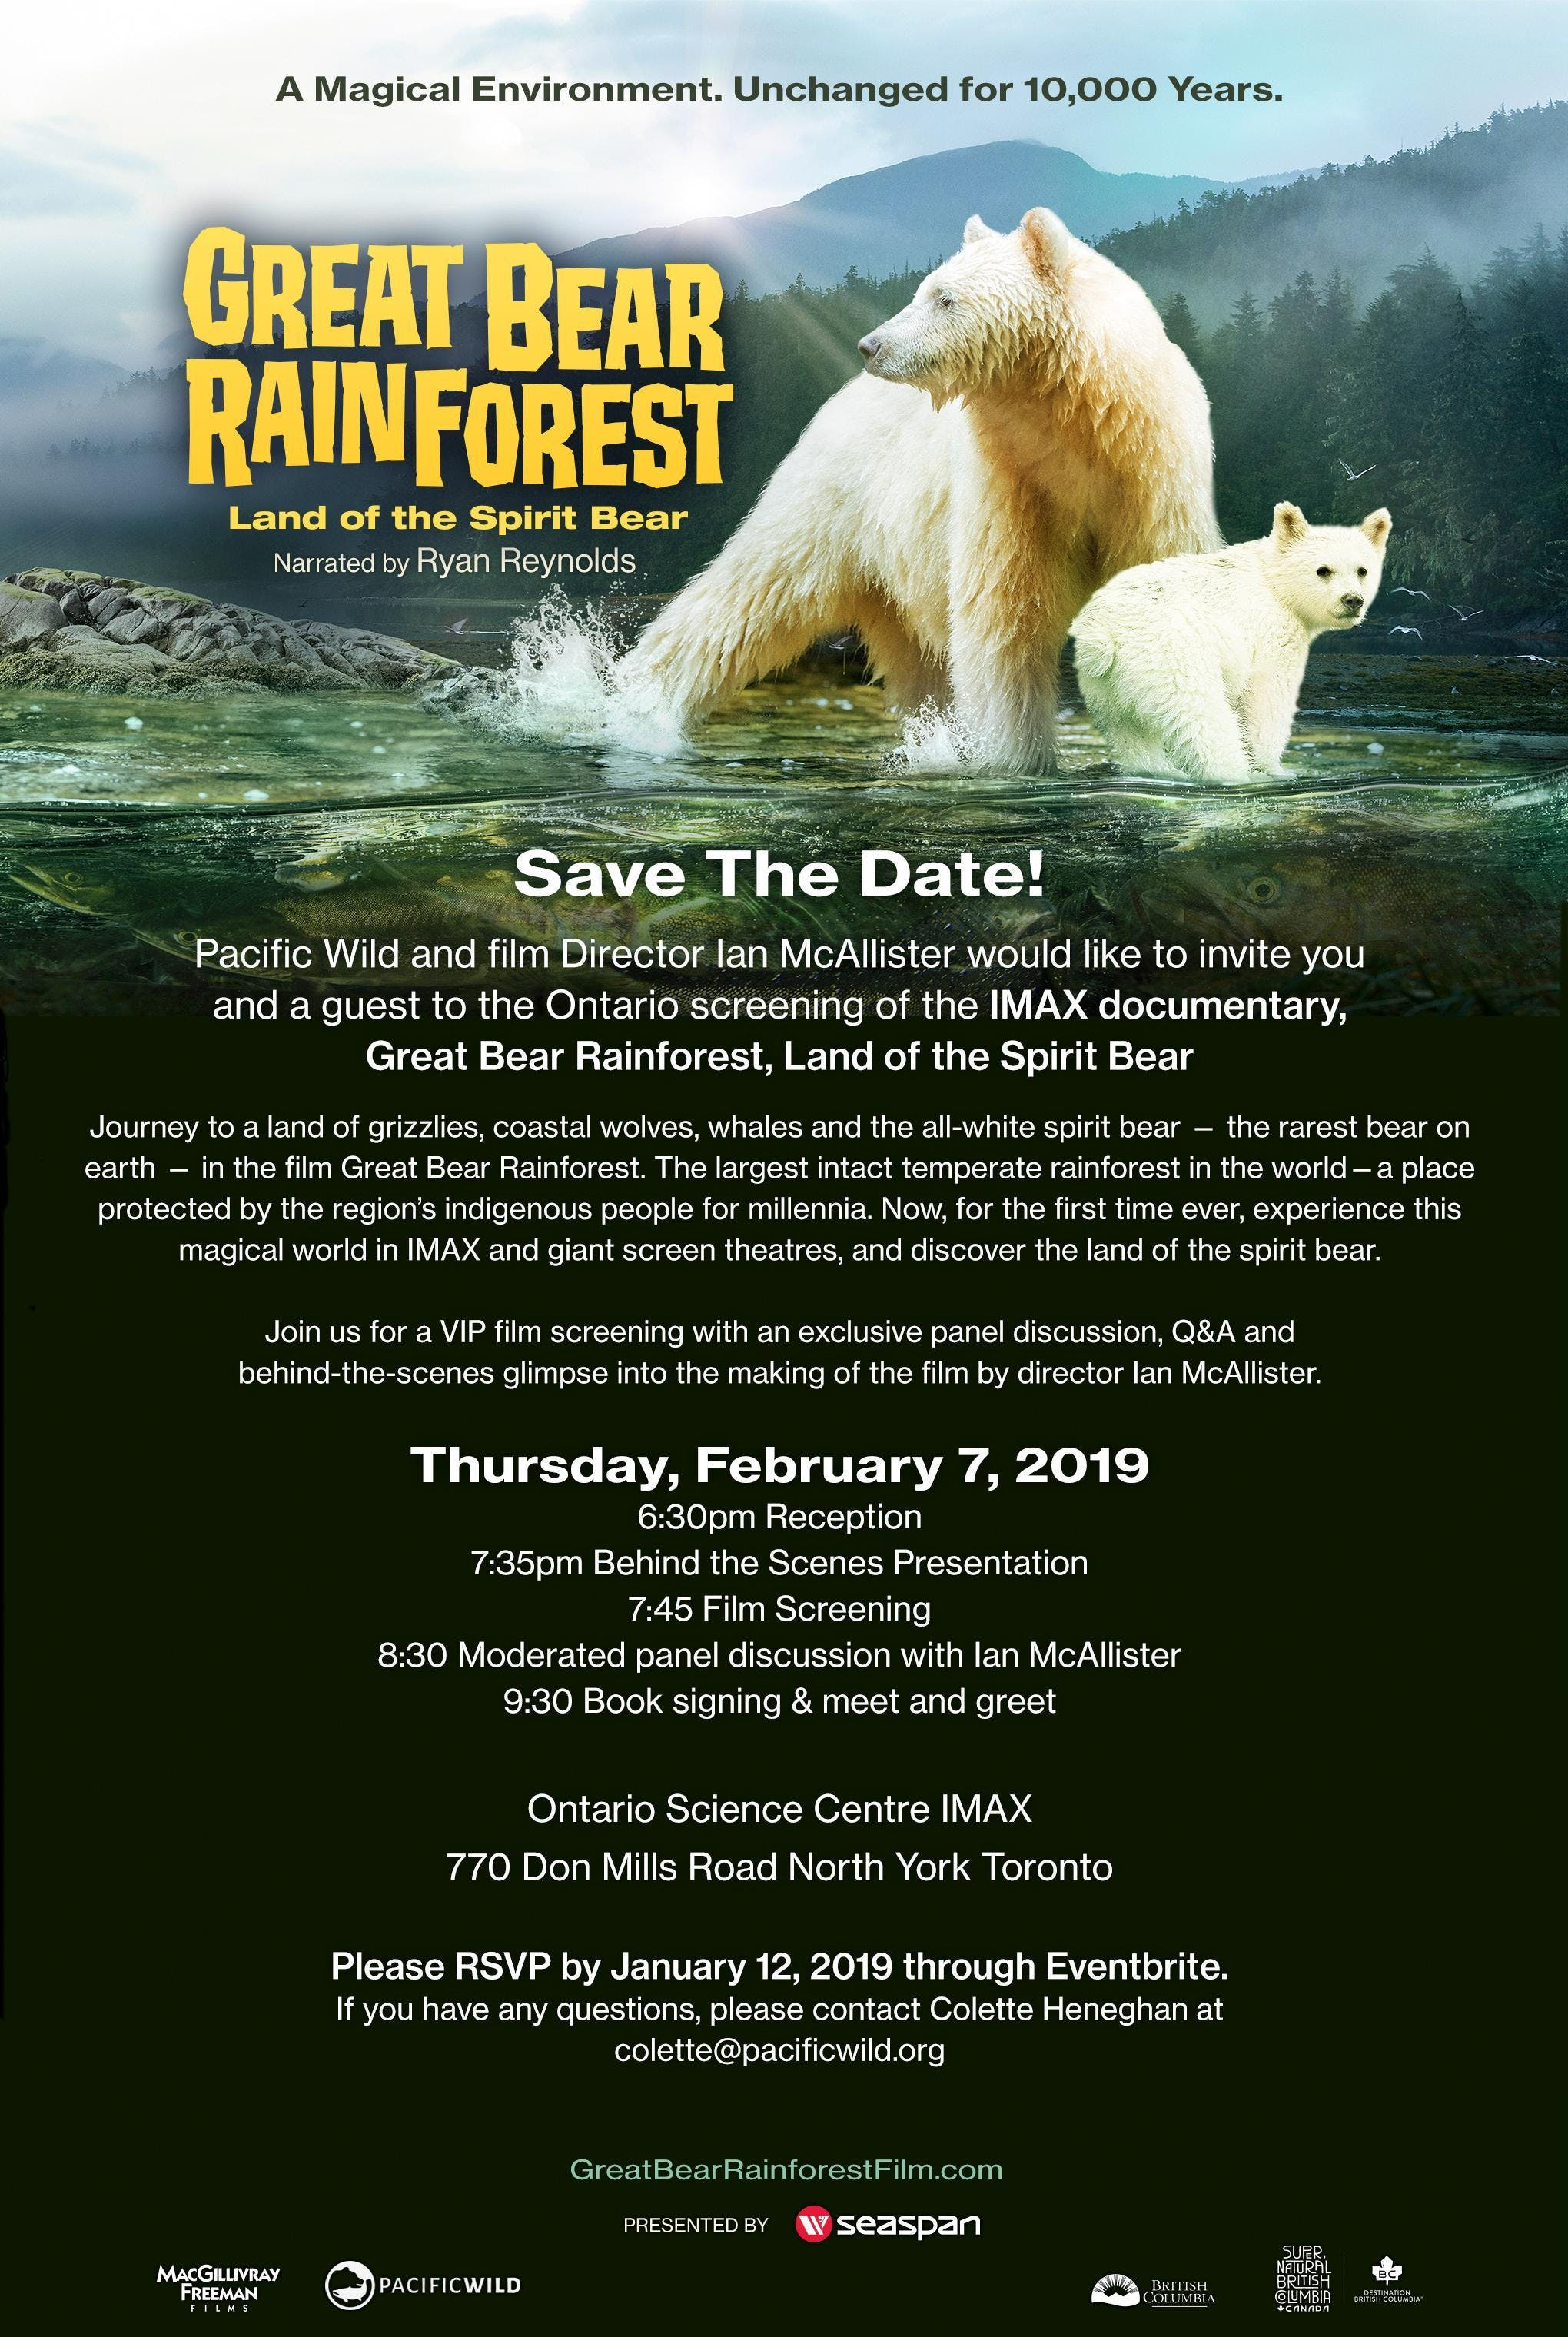 IMAX Great Bear Rainforest Screening and Dire